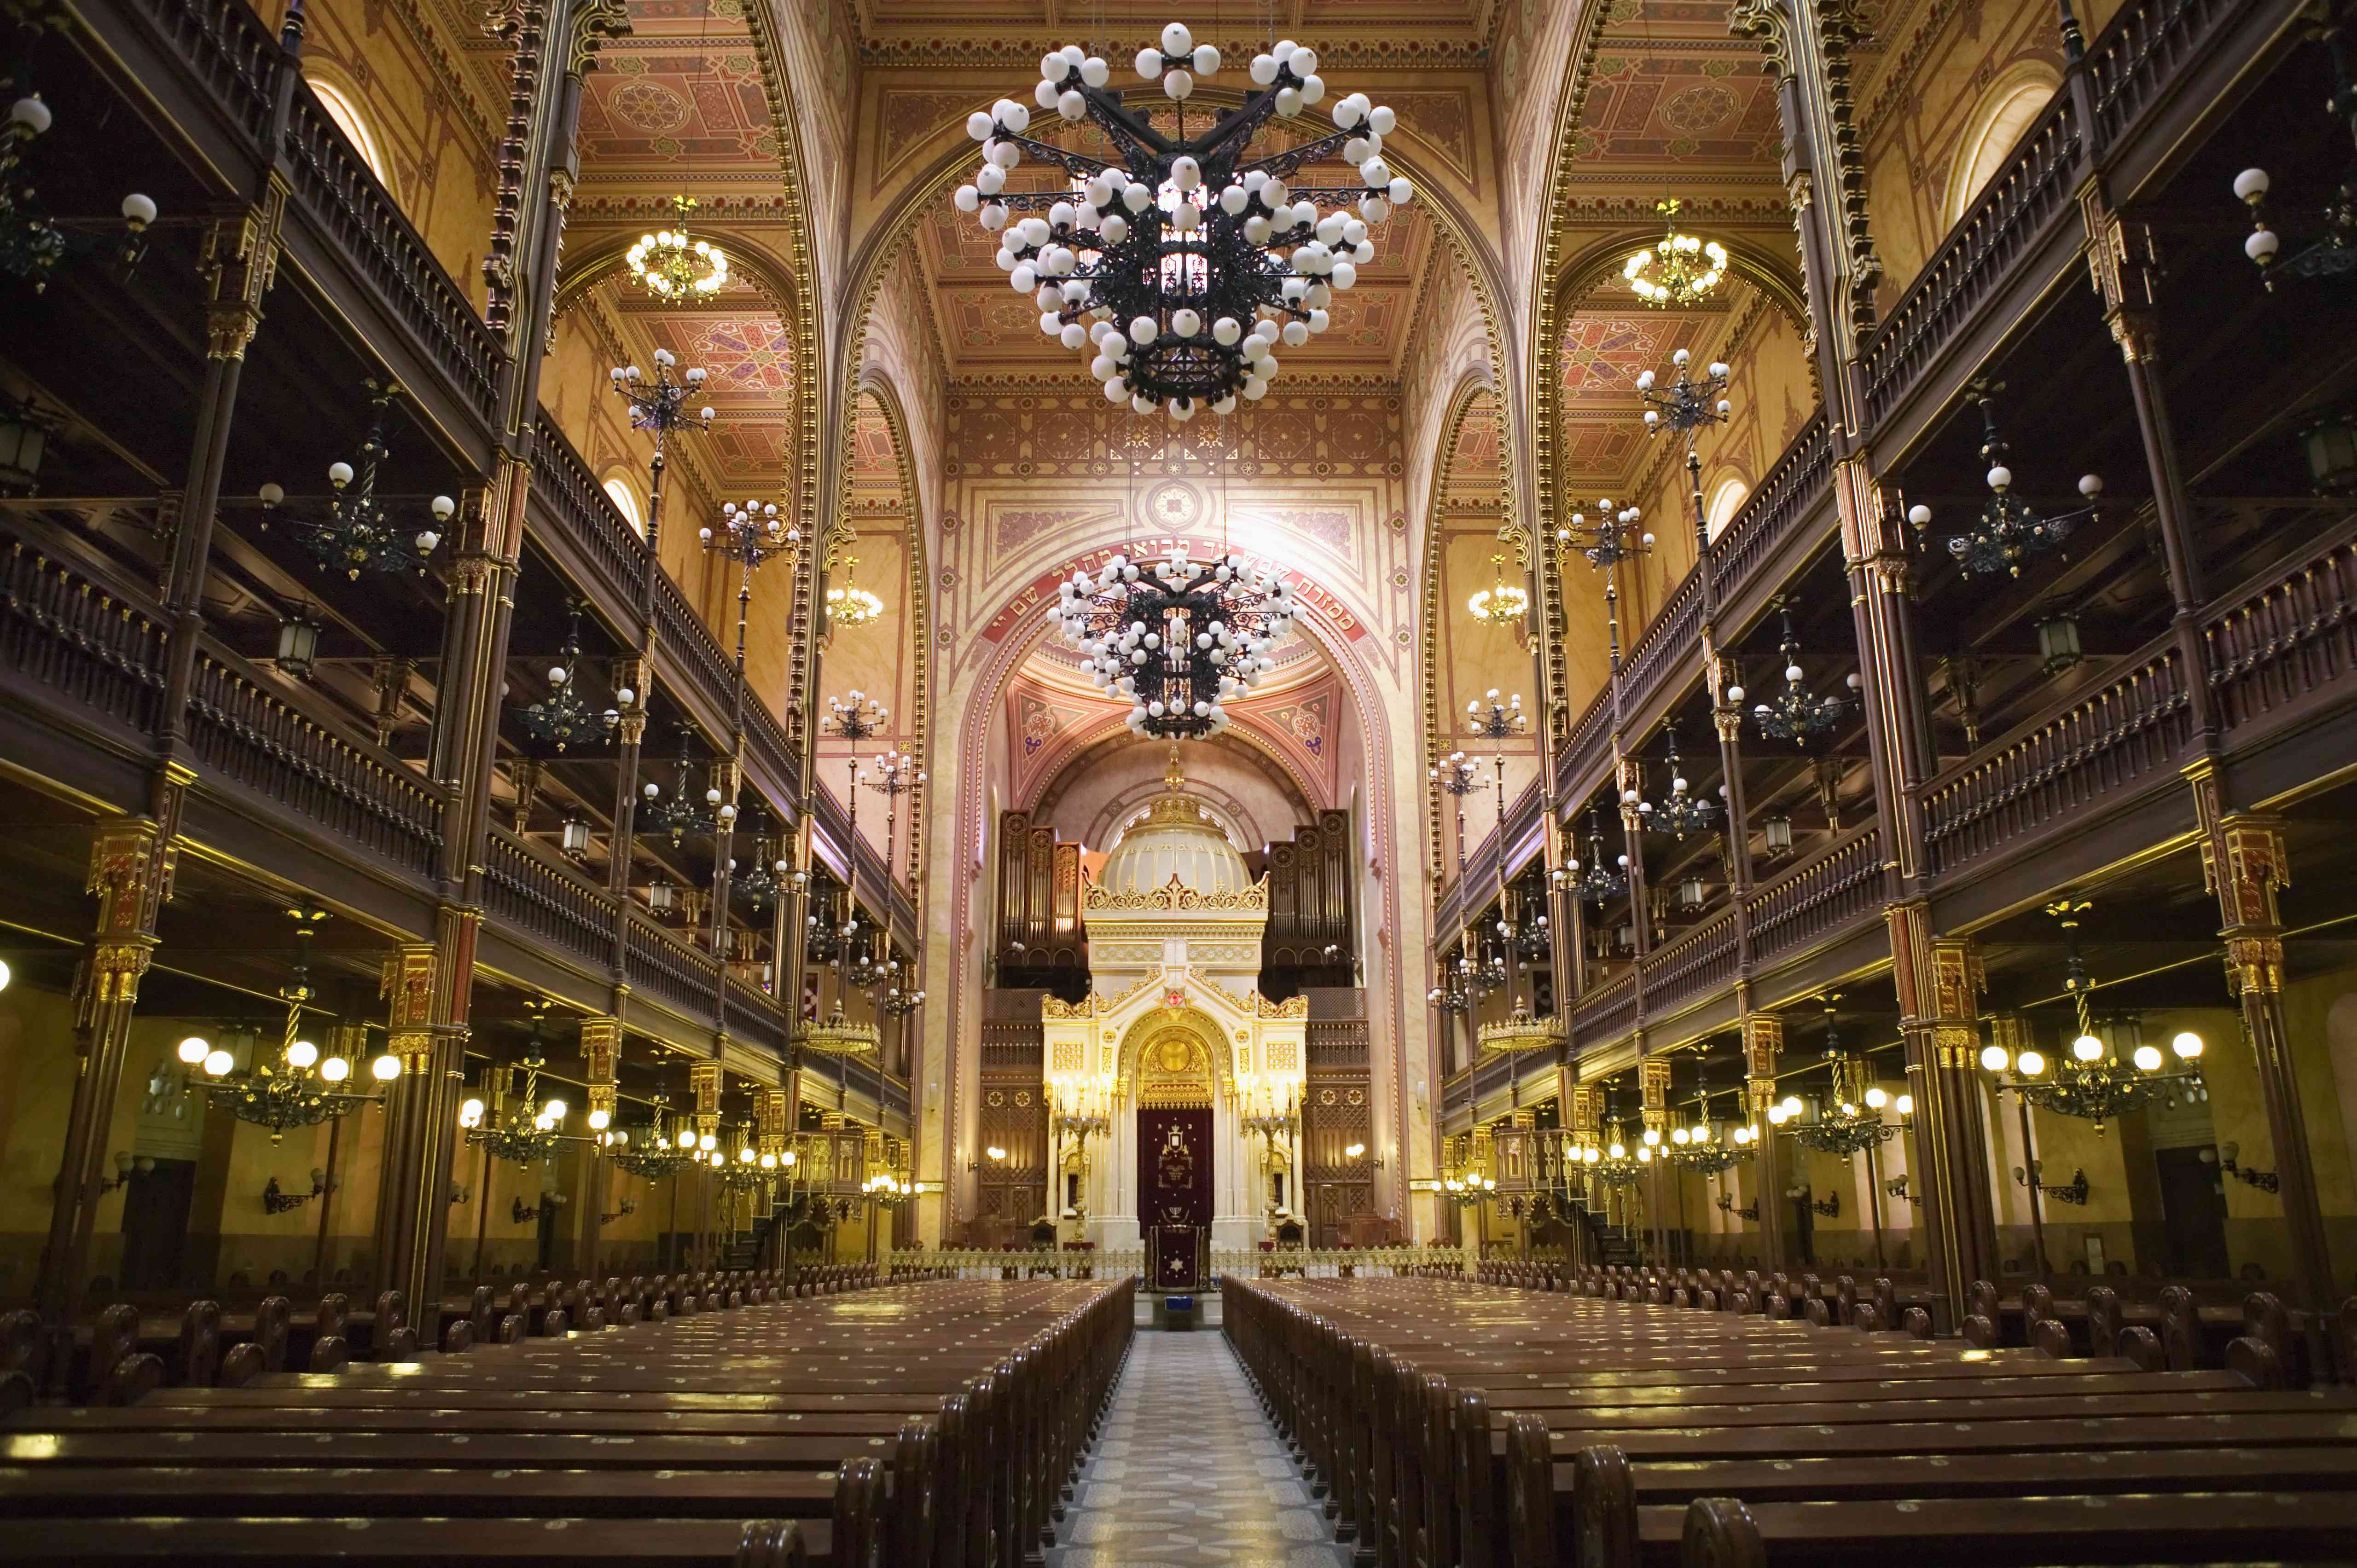 Hungary, Budapest, The Great Synagogue, interior